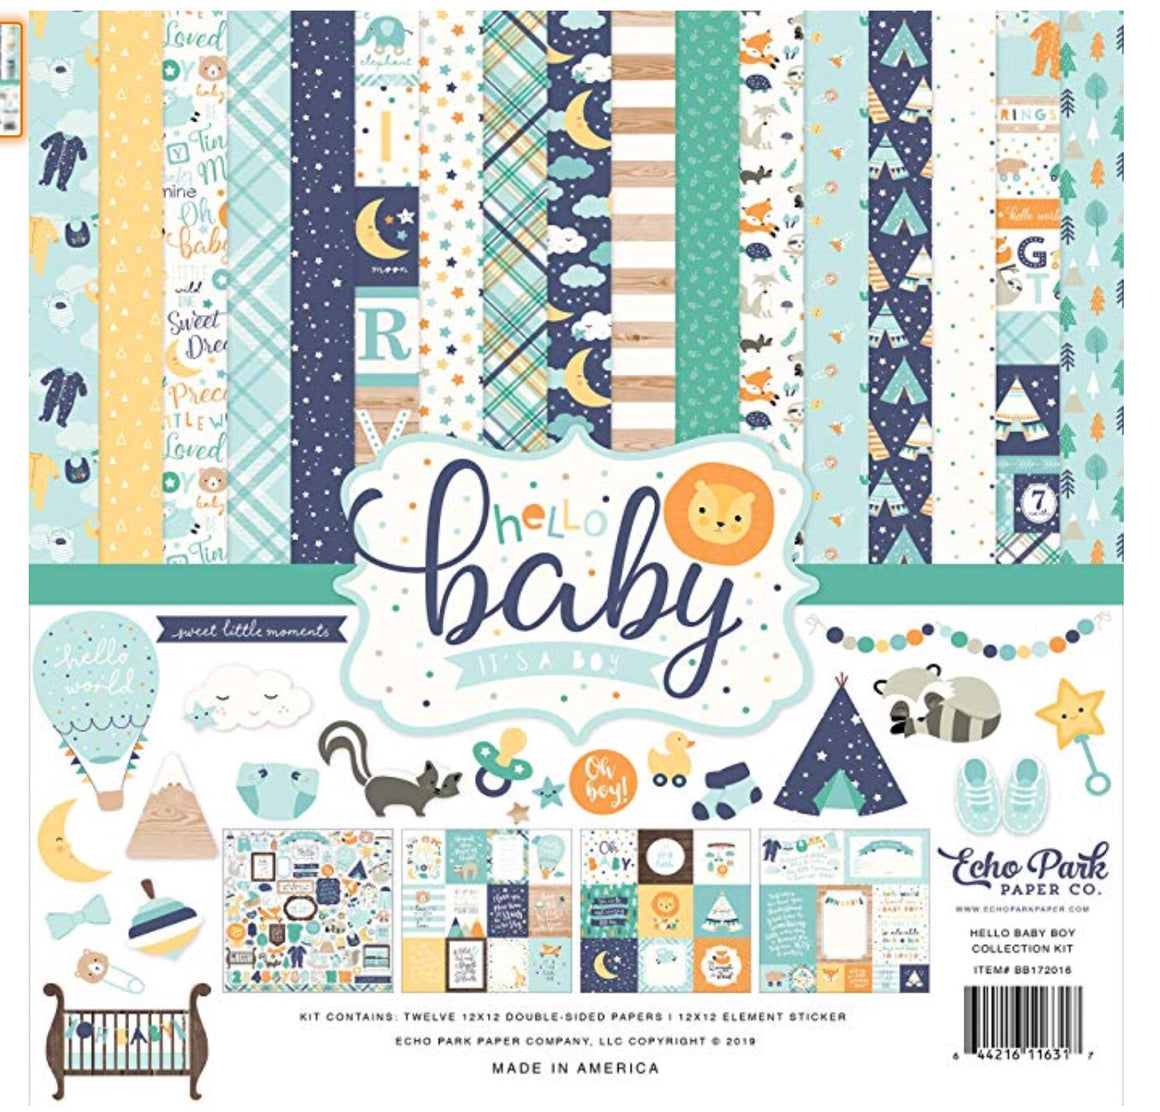 Echo park paper company 12x12 Hello baby boy collection kit